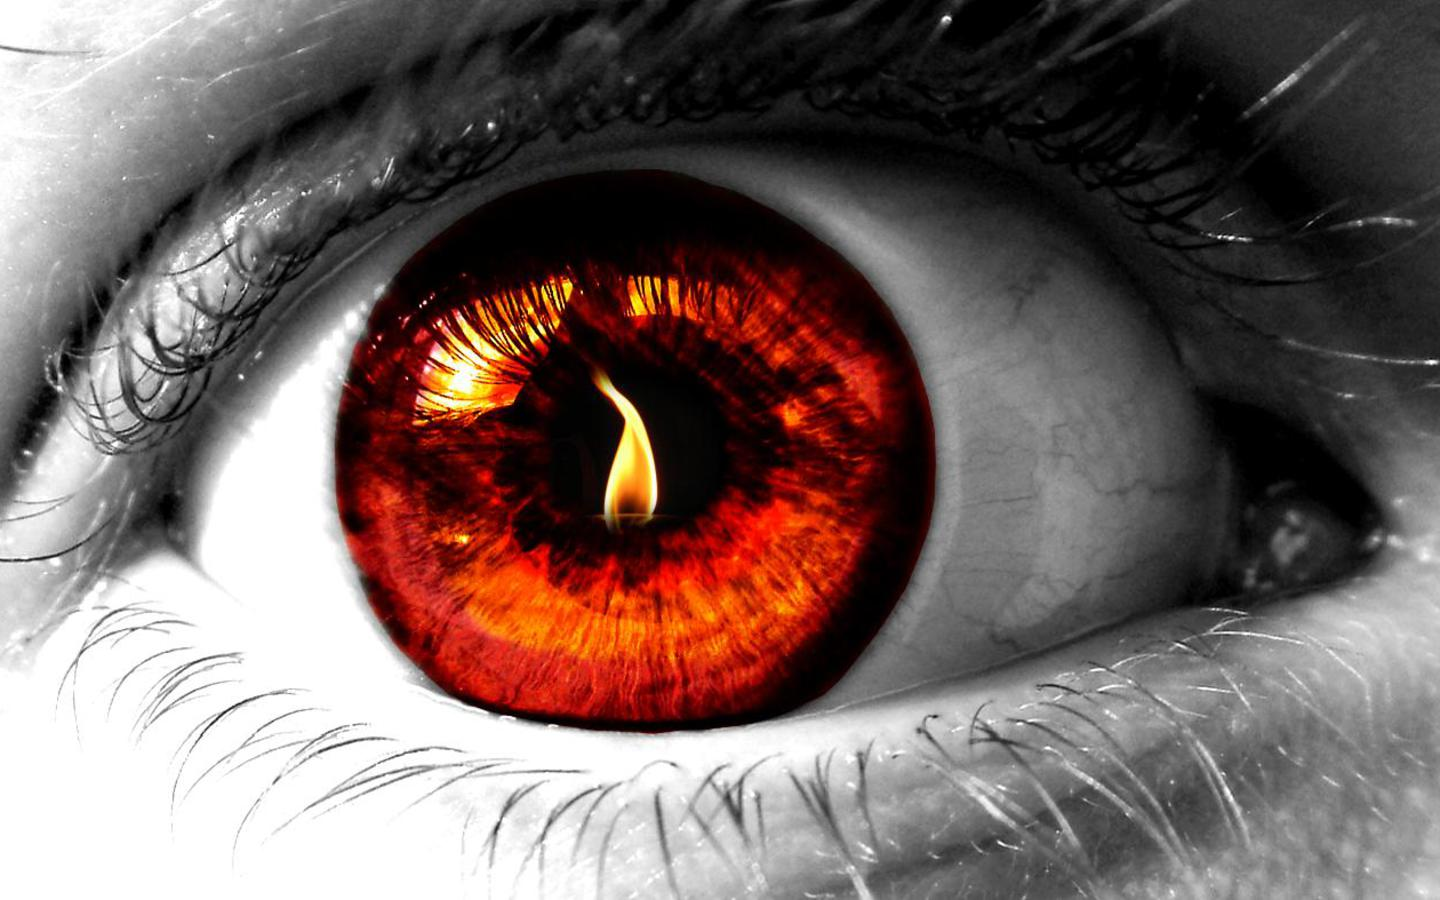 http://3.bp.blogspot.com/_KLJU3hHDGVM/TDncZscpKII/AAAAAAAADAo/KpbXA5CMbQI/s1600/Fire_in_the_Eye_Wallpaper.jpg